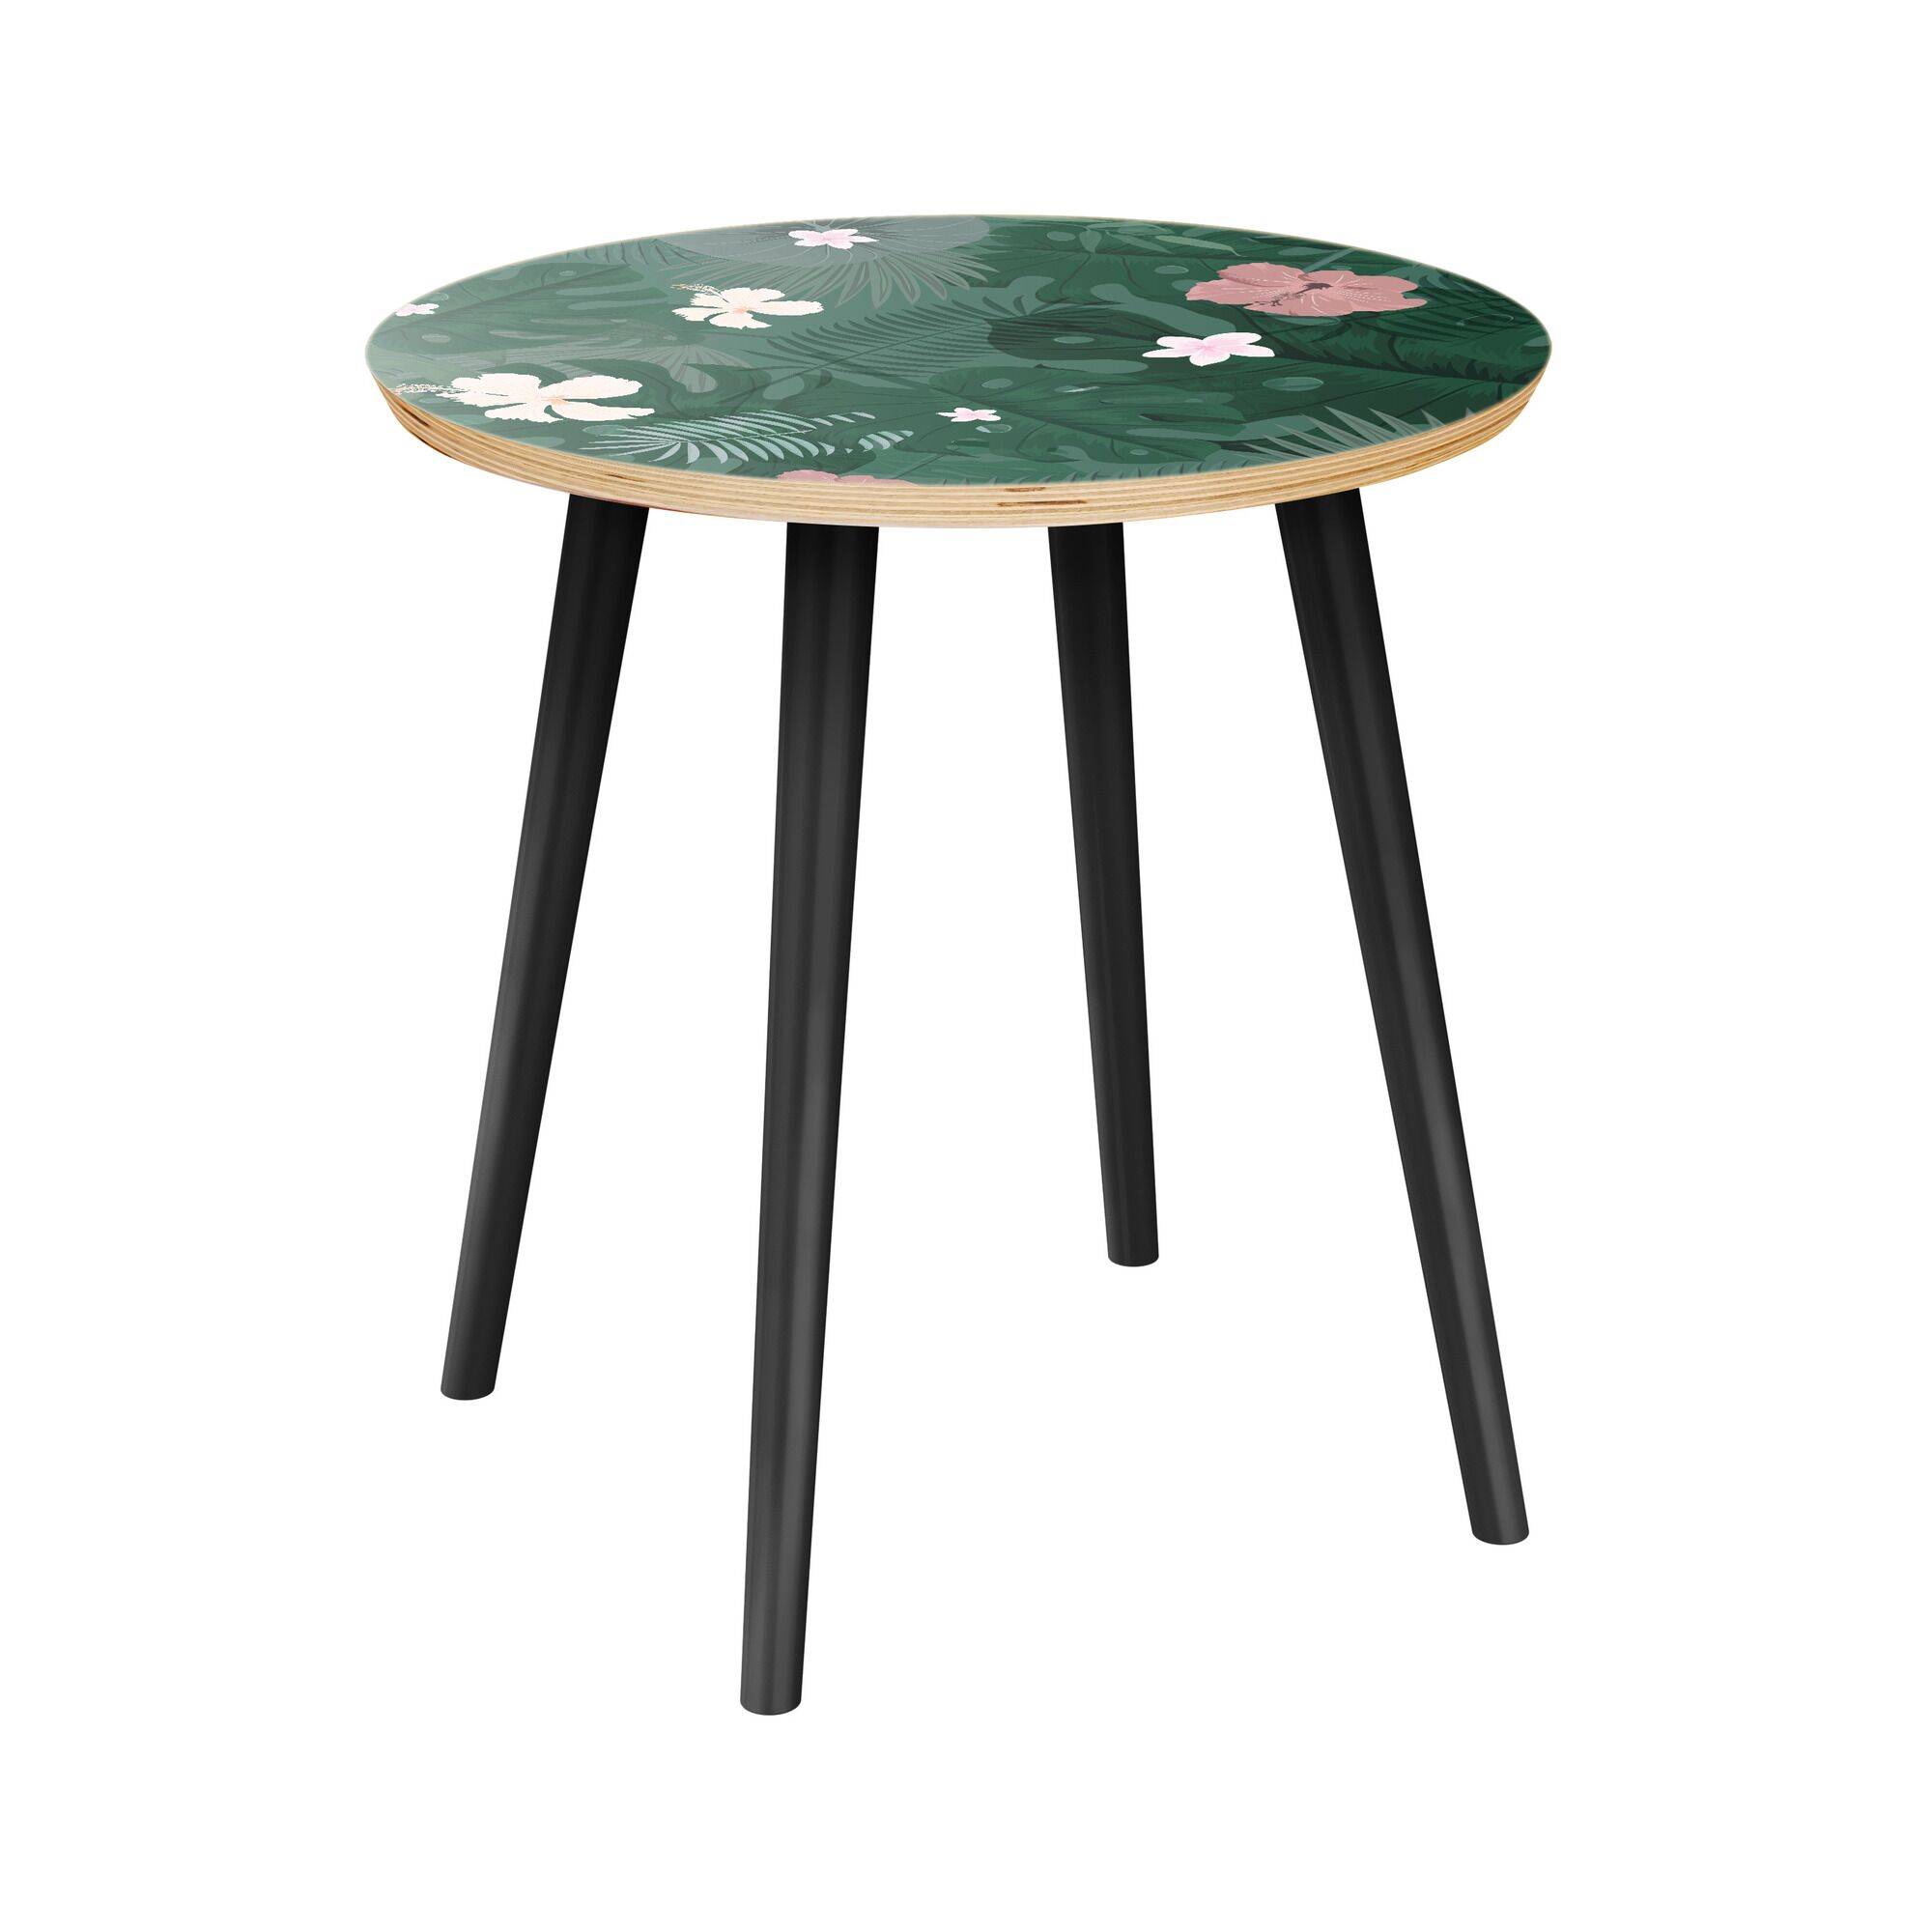 Ratley End Table Table Top Color: Natural, Table Base Color: Black